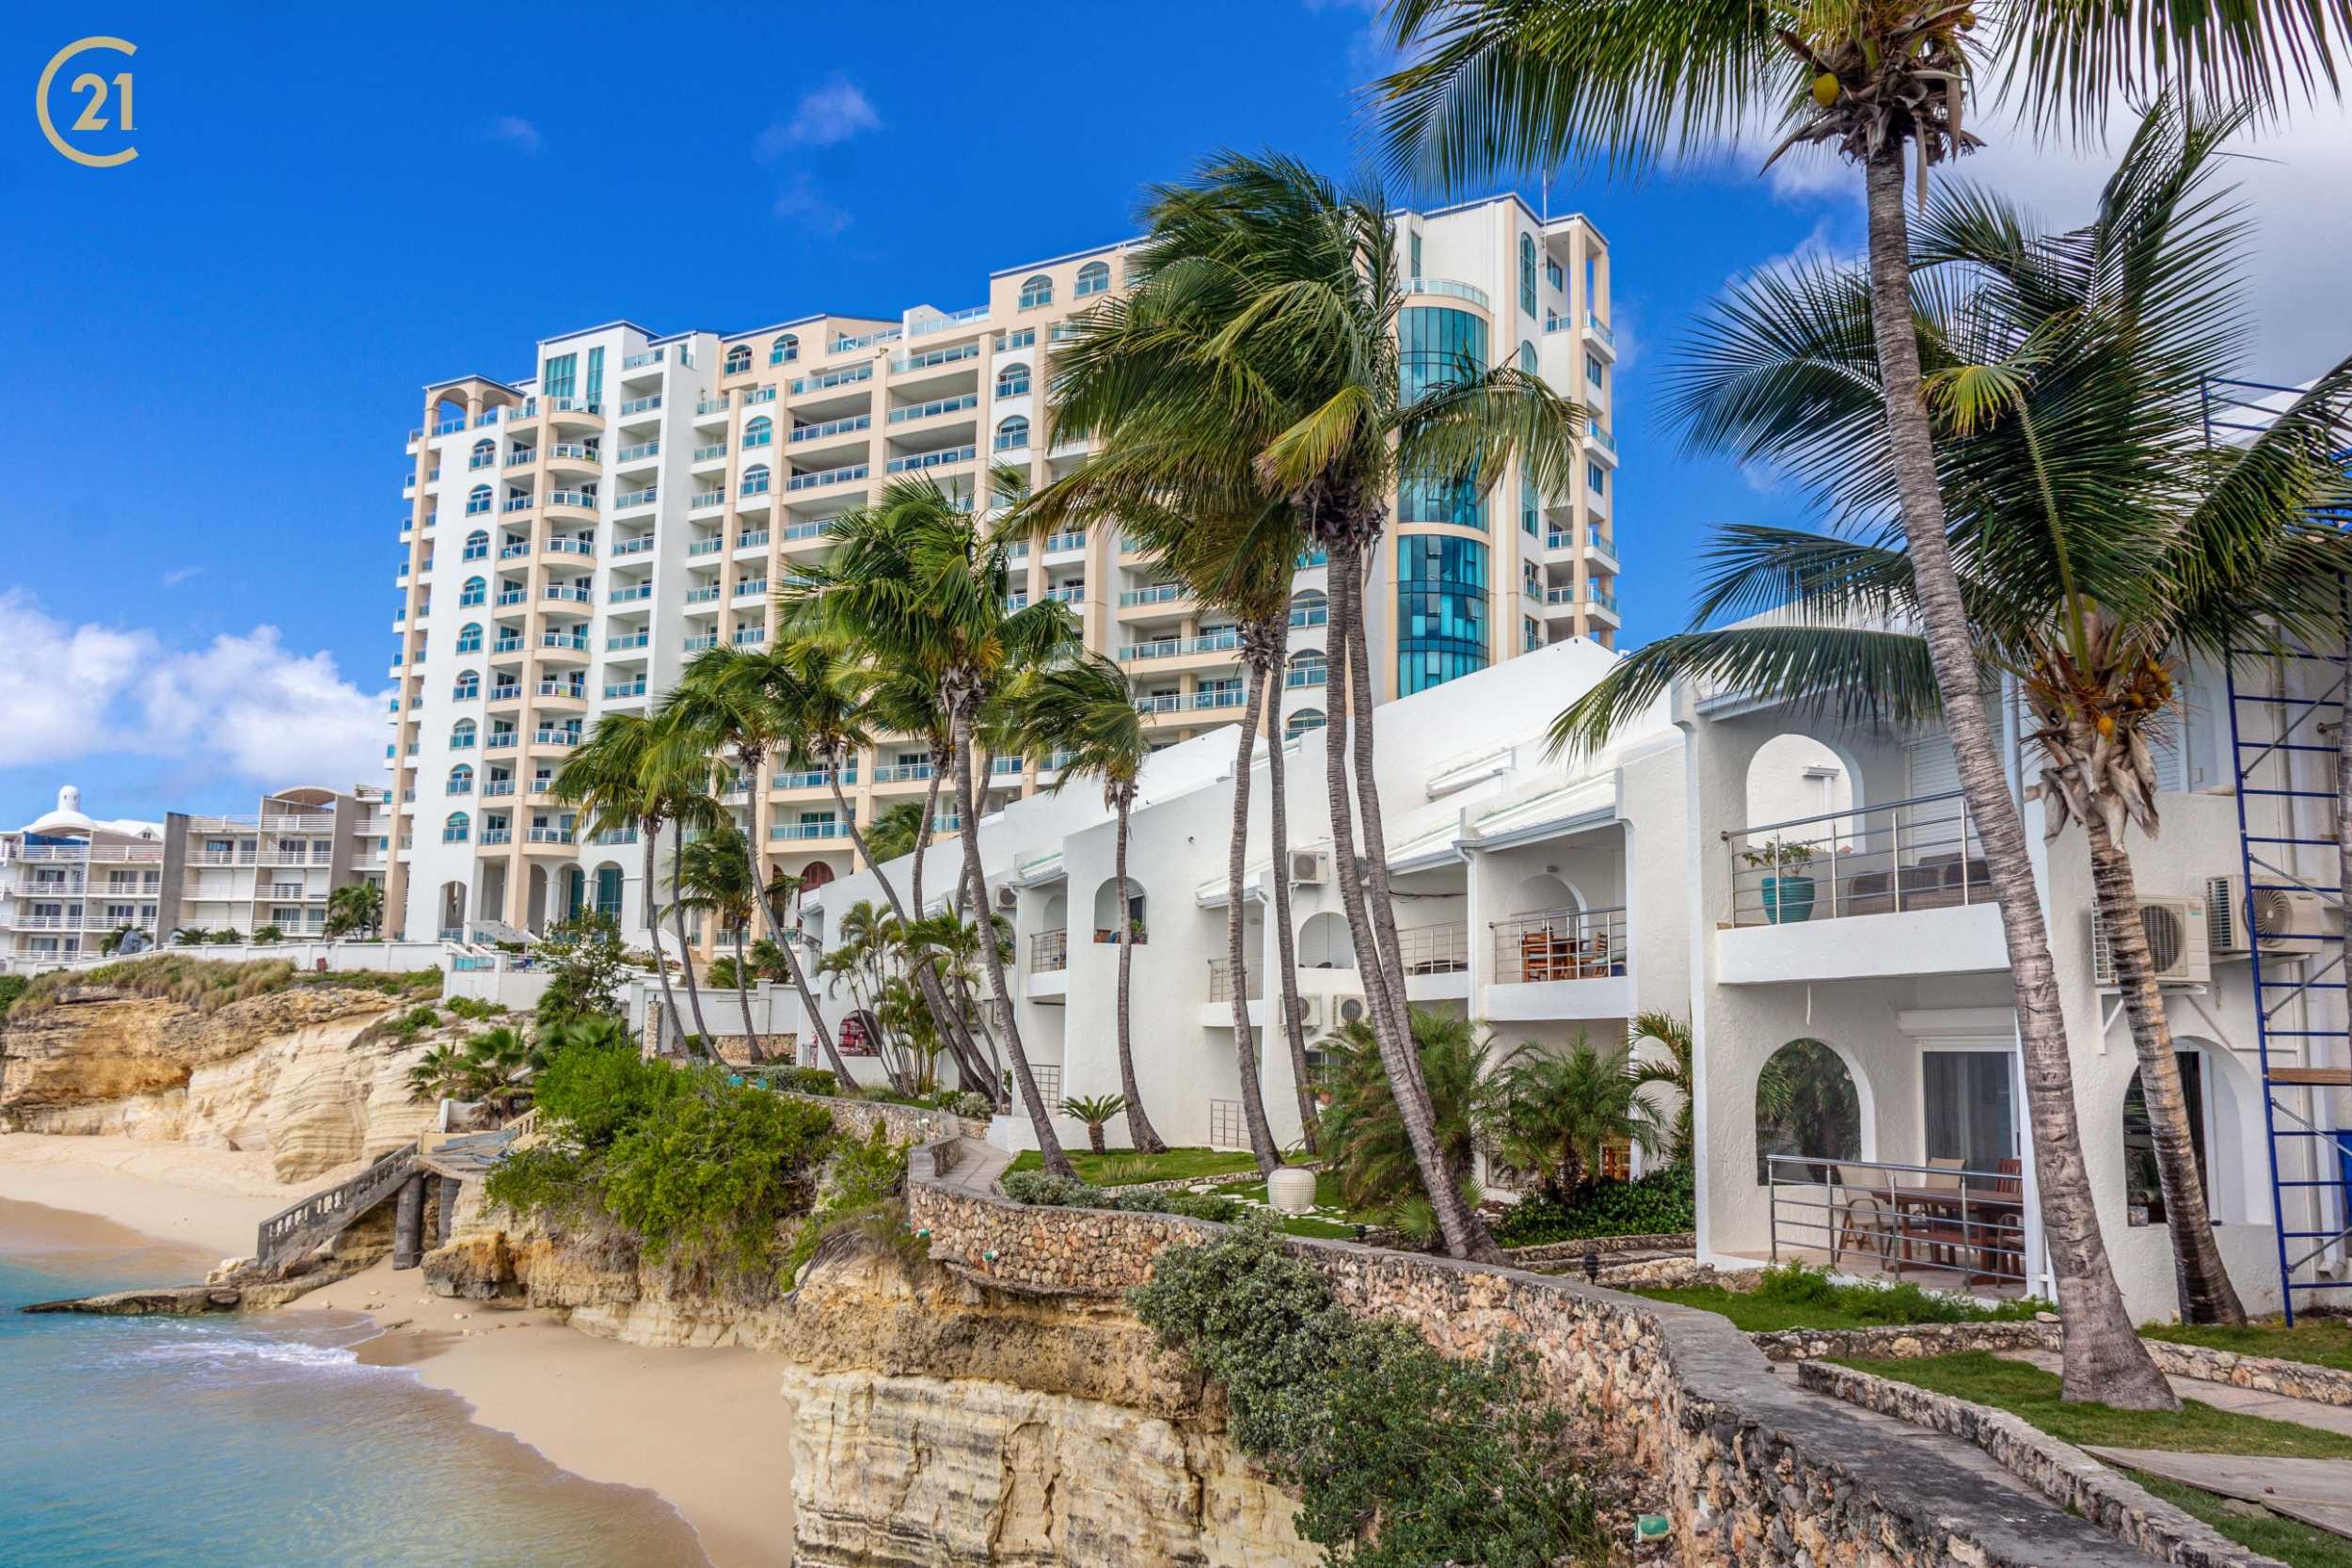 Cupecoy Beach Club Two Bedroom Condo For Sale